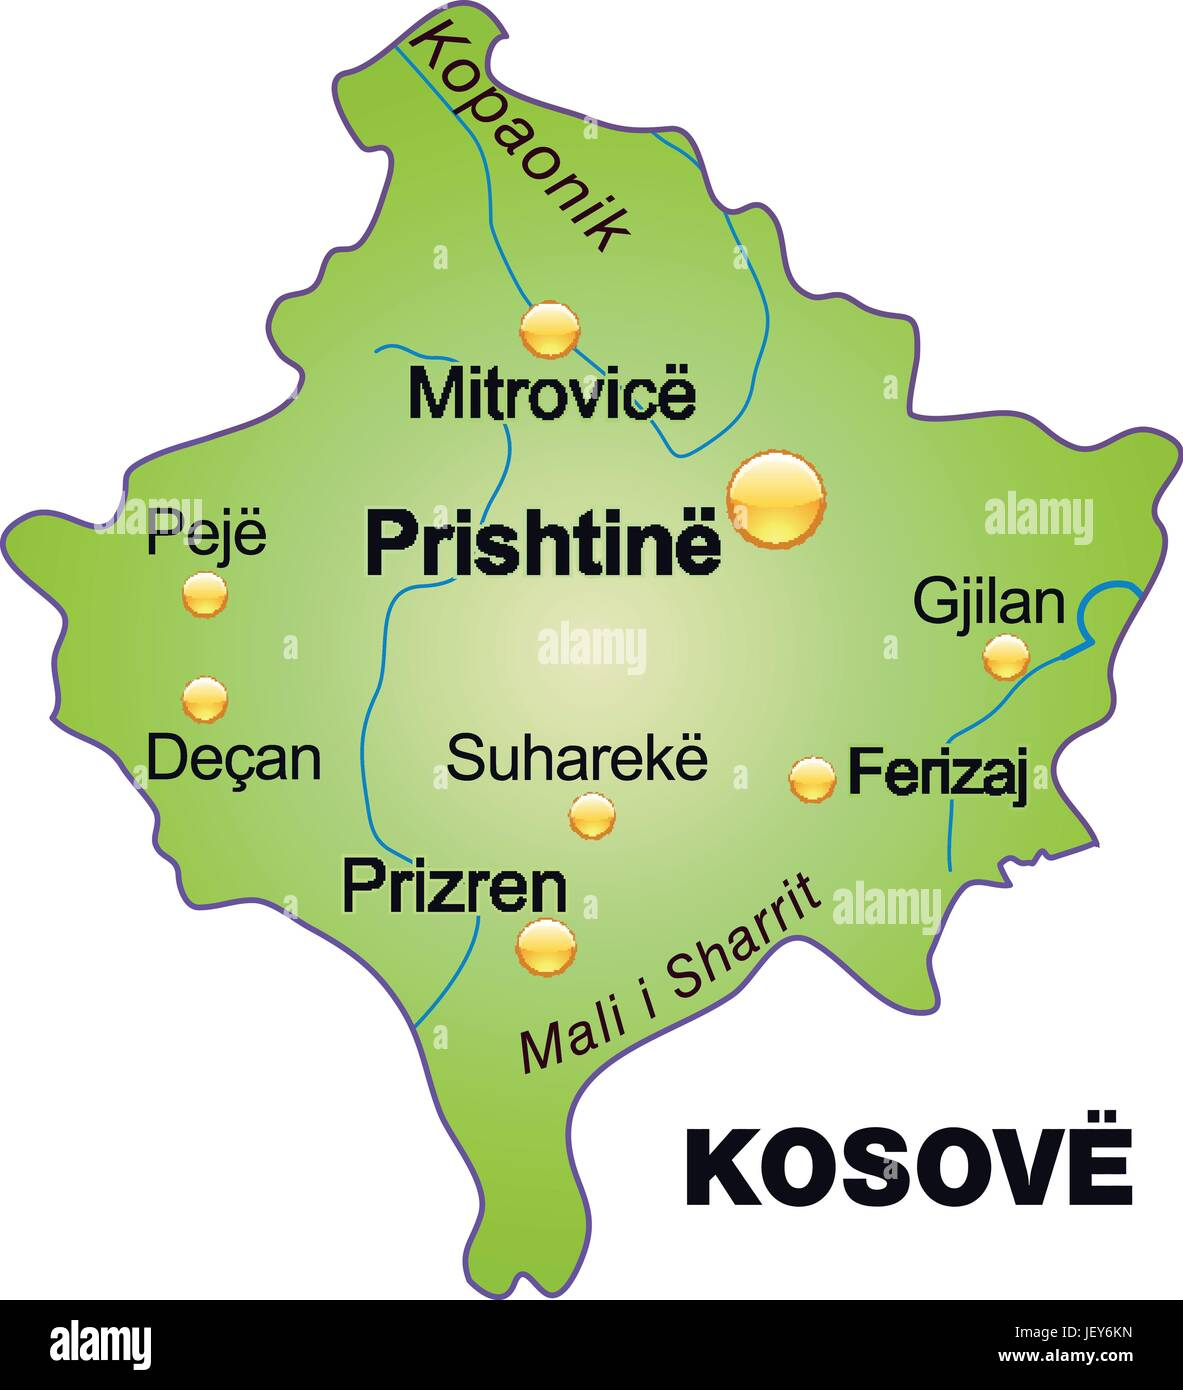 card, outline, borders, kosovo, atlas, map of the world, map Stock on sweden border map, czech republic border map, latvia border map, europe border map, france border map, afghanistan border map, vatican city border map, hungary border map, mexico border map, gaza border map, russia border map, kazakhstan border map, monaco border map, vietnam border map, sudan border map, venezuela border map, hong kong border map, bulgaria border map, bermuda border map, greece border map,